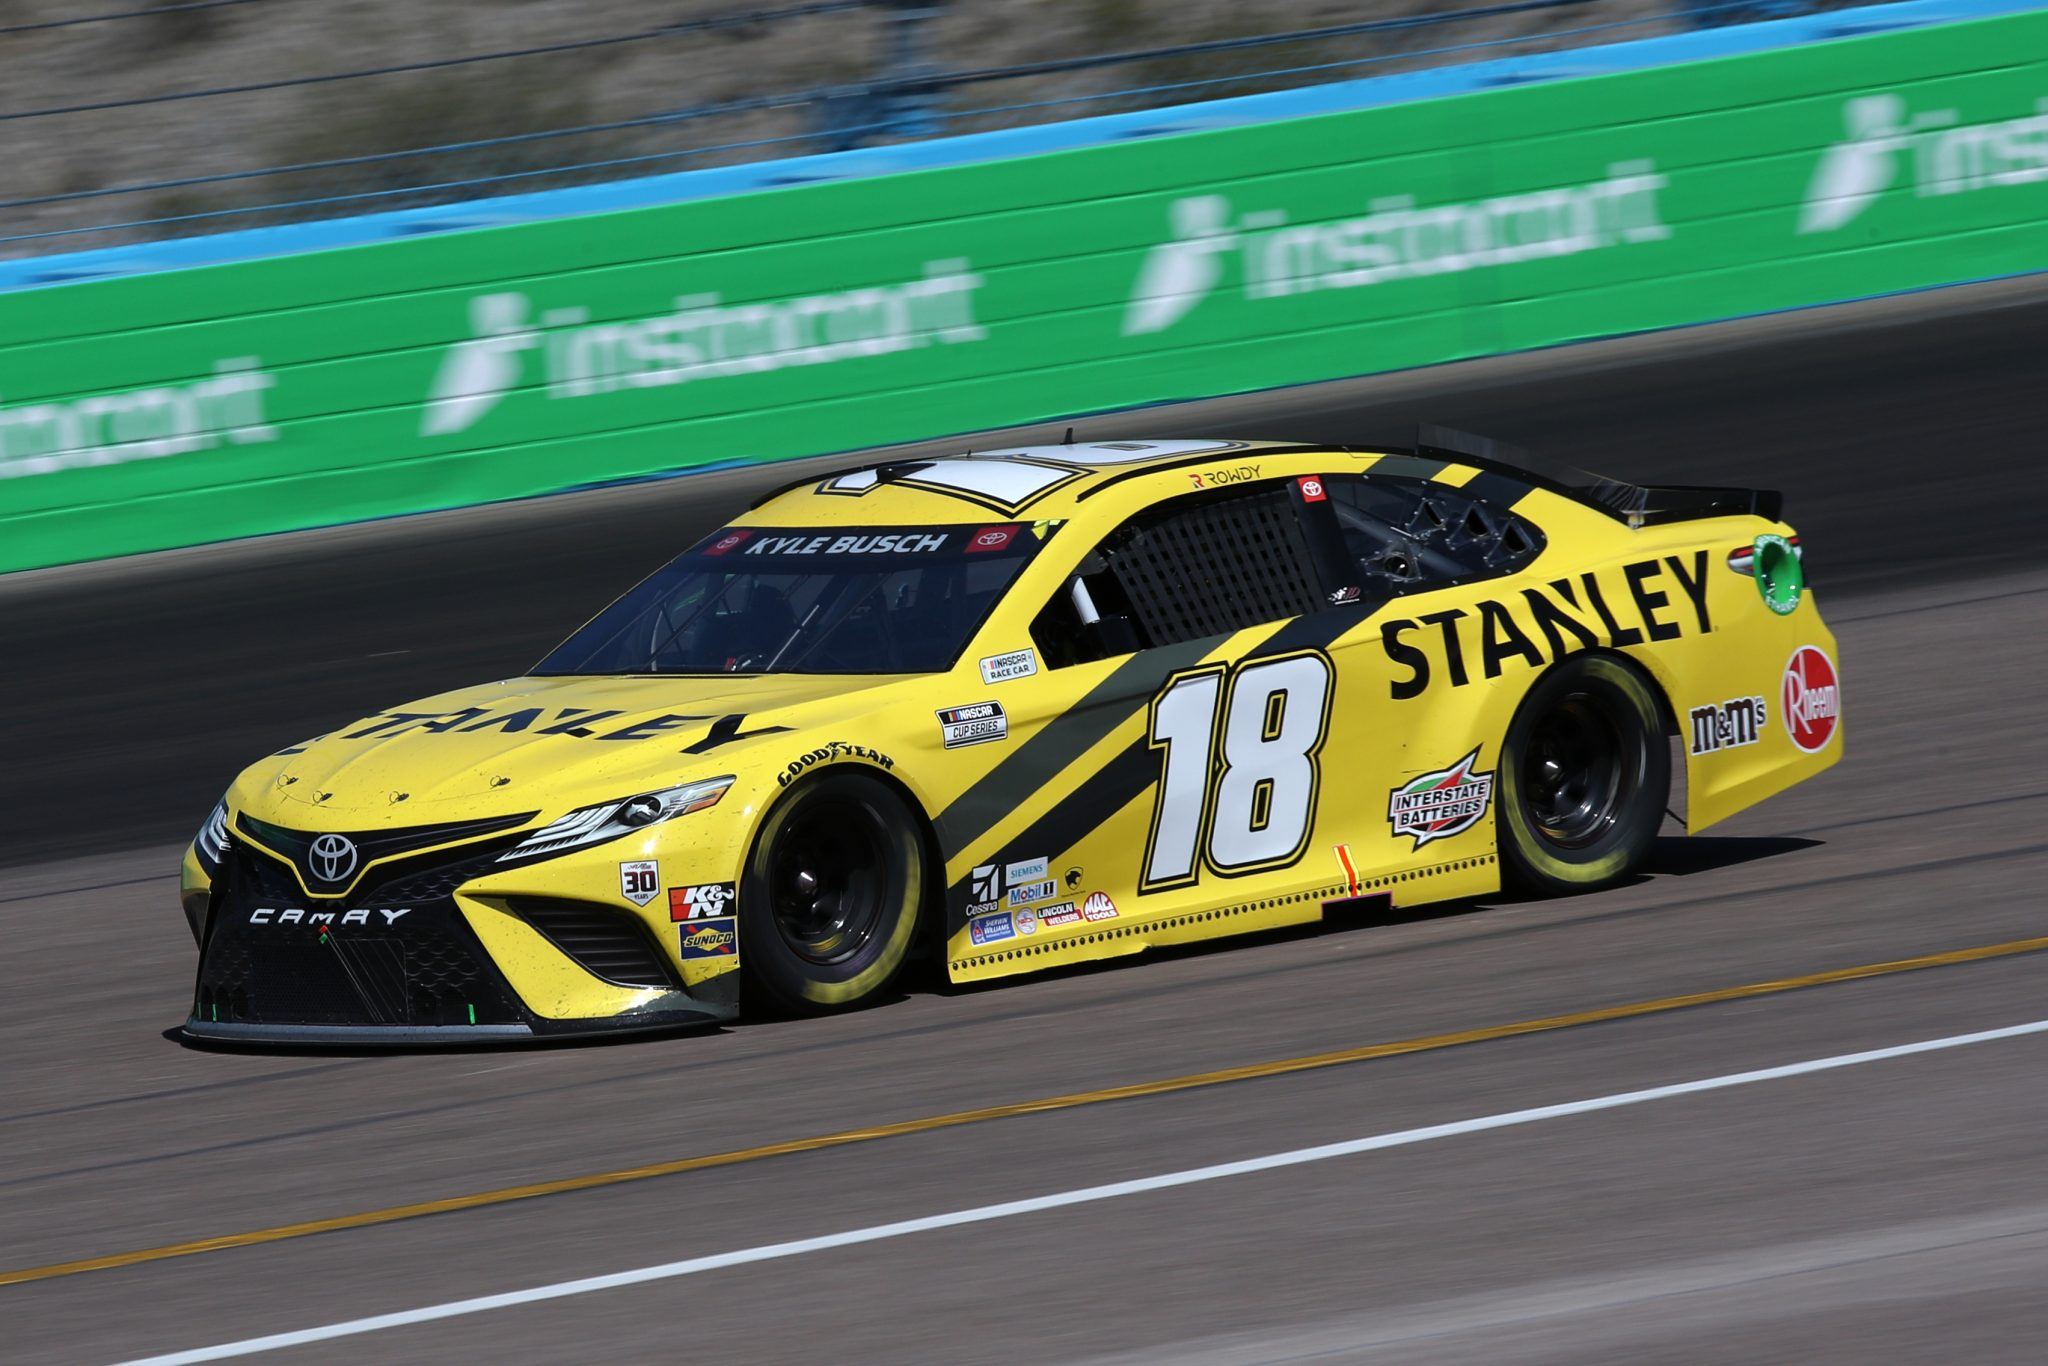 AVONDALE, ARIZONA - MARCH 14: Kyle Busch, driver of the #18 STANLEY Toyota, drives during the NASCAR Cup Series Instacart 500 at Phoenix Raceway on March 14, 2021 in Avondale, Arizona. (Photo by Sean Gardner/Getty Images) | Getty Images